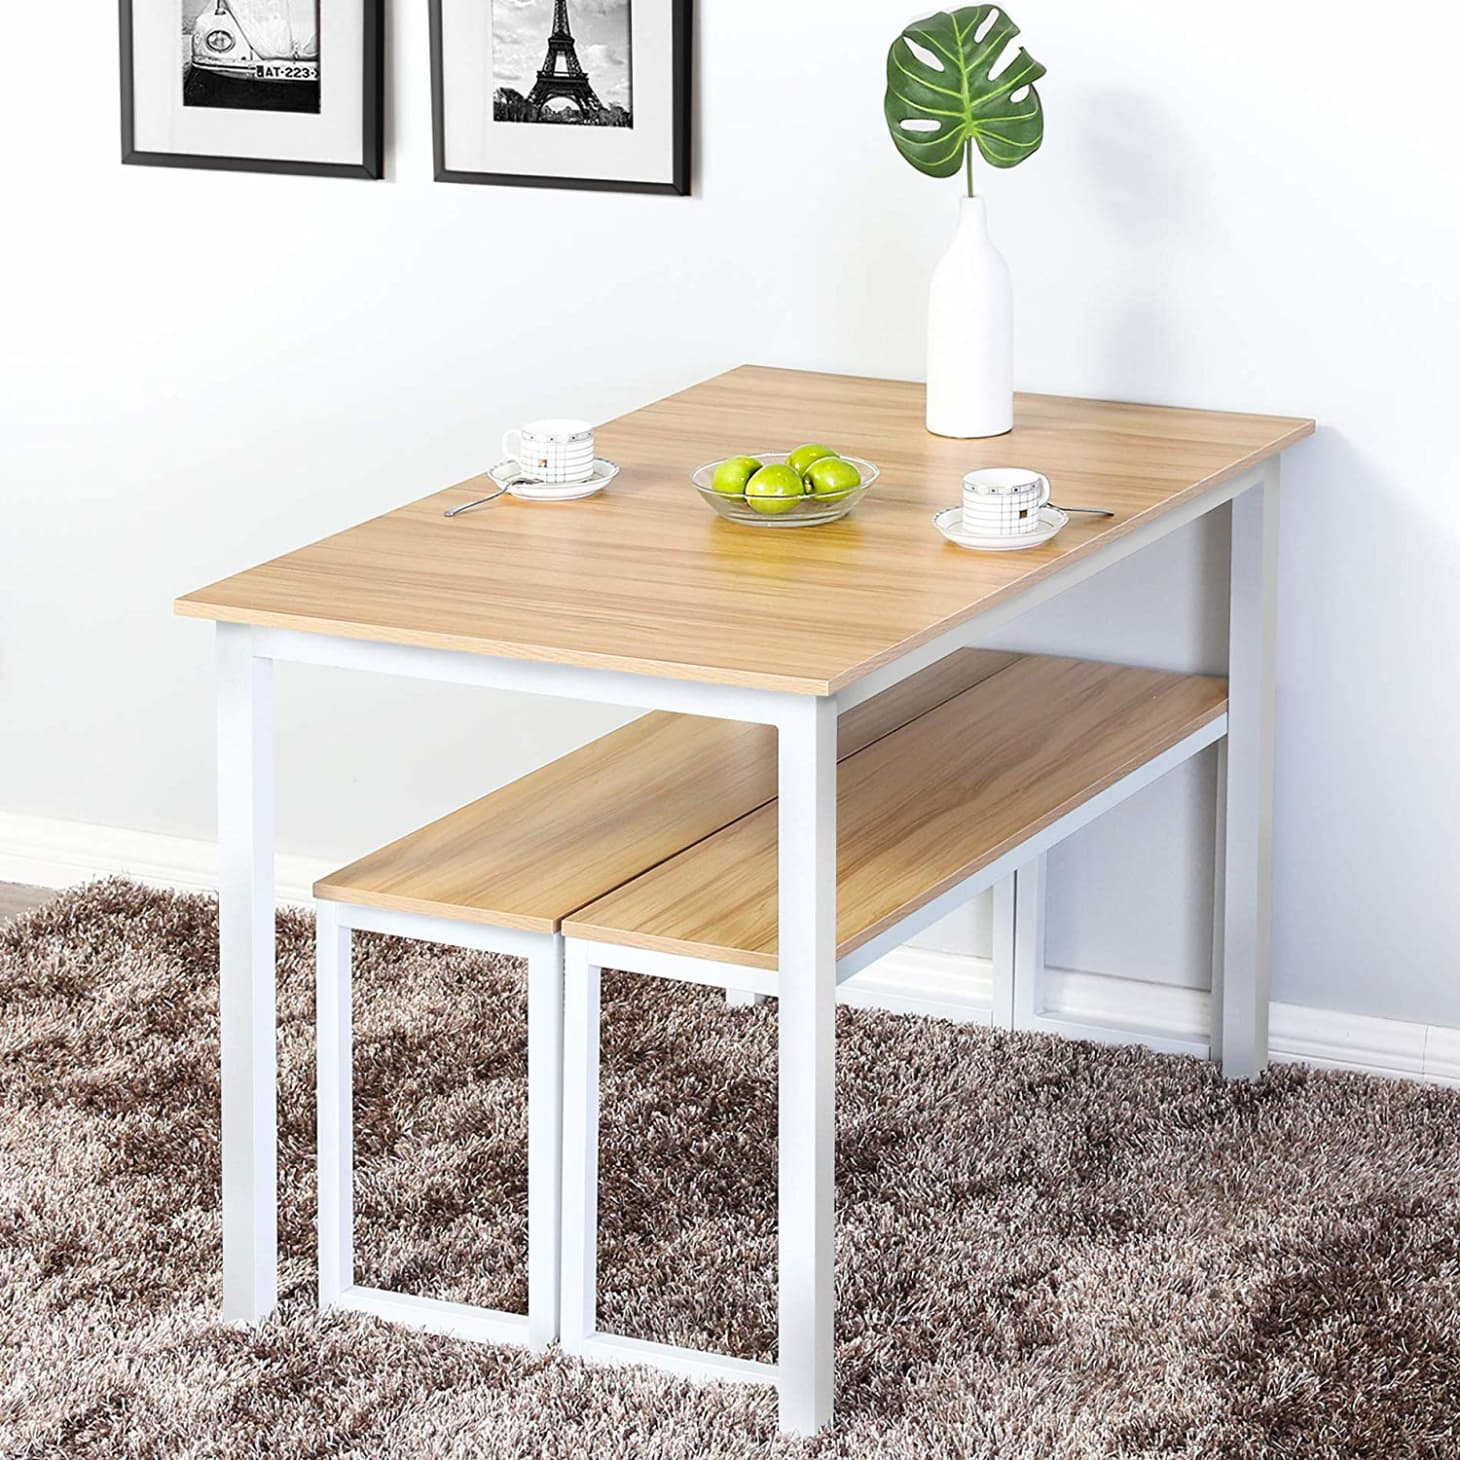 Prime Dining Table And Chair Sets For Small Spaces Kitchn Andrewgaddart Wooden Chair Designs For Living Room Andrewgaddartcom